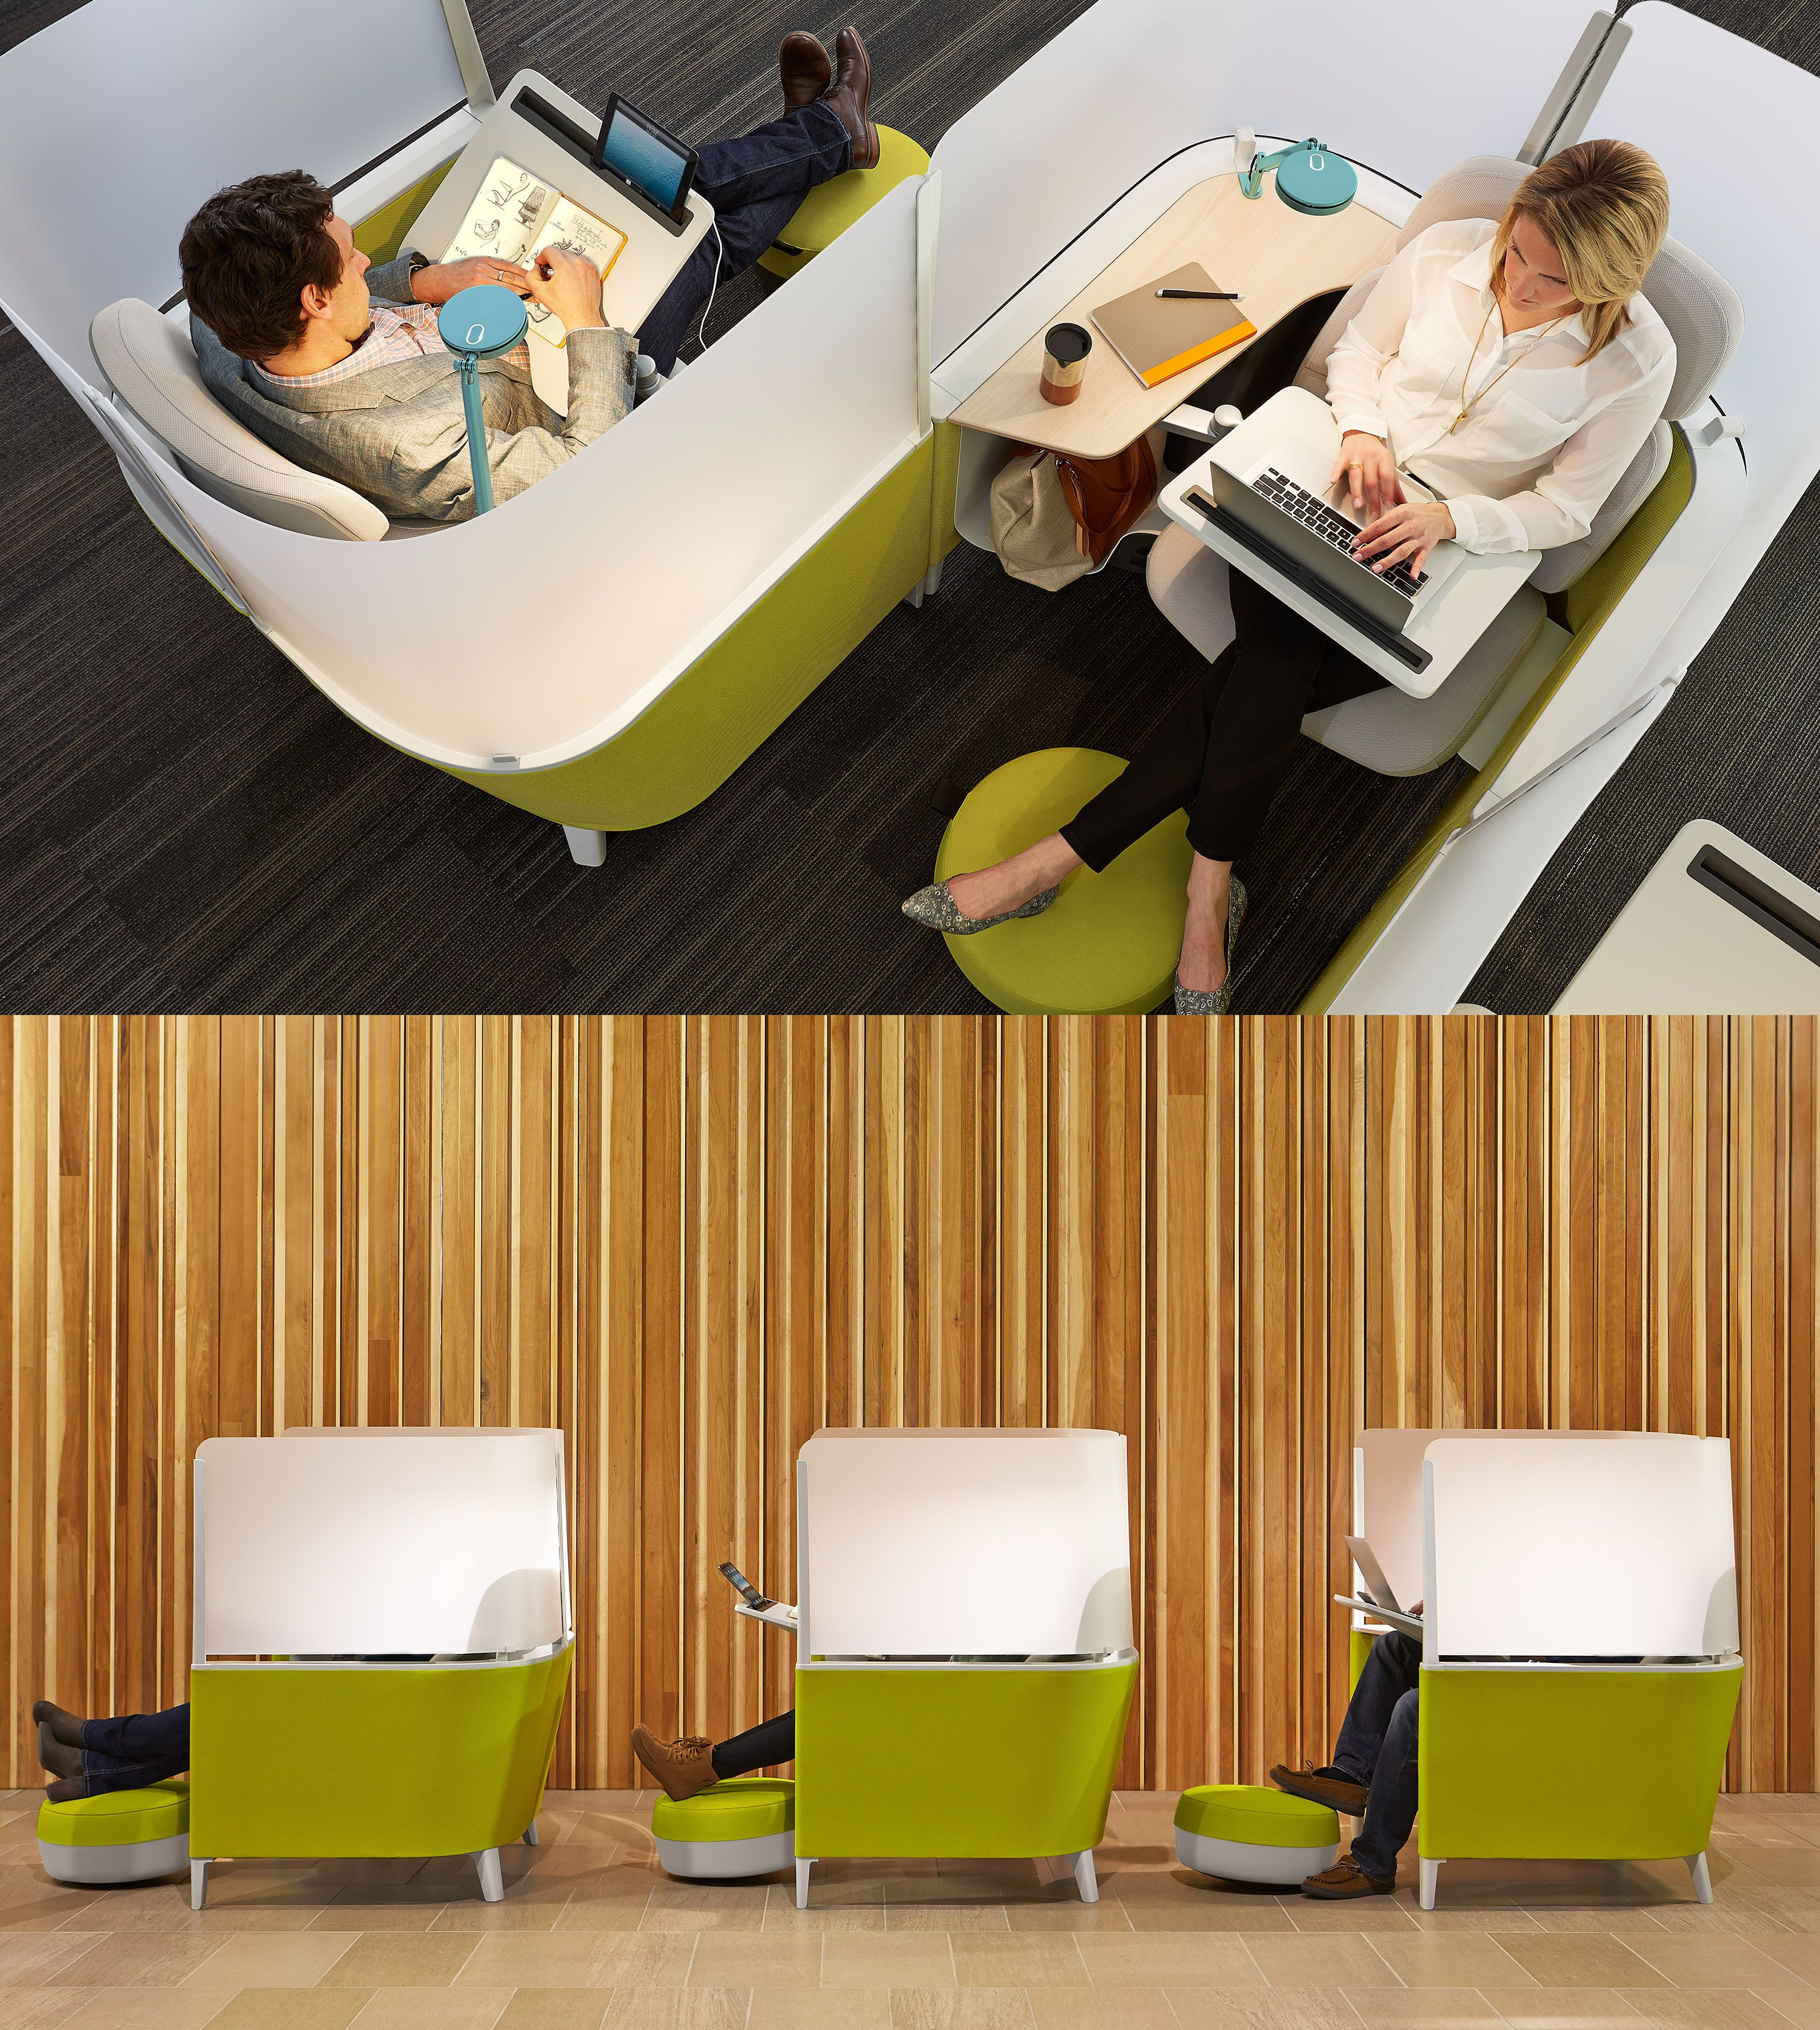 Brody by Steelcase. Providing high performance comfort and